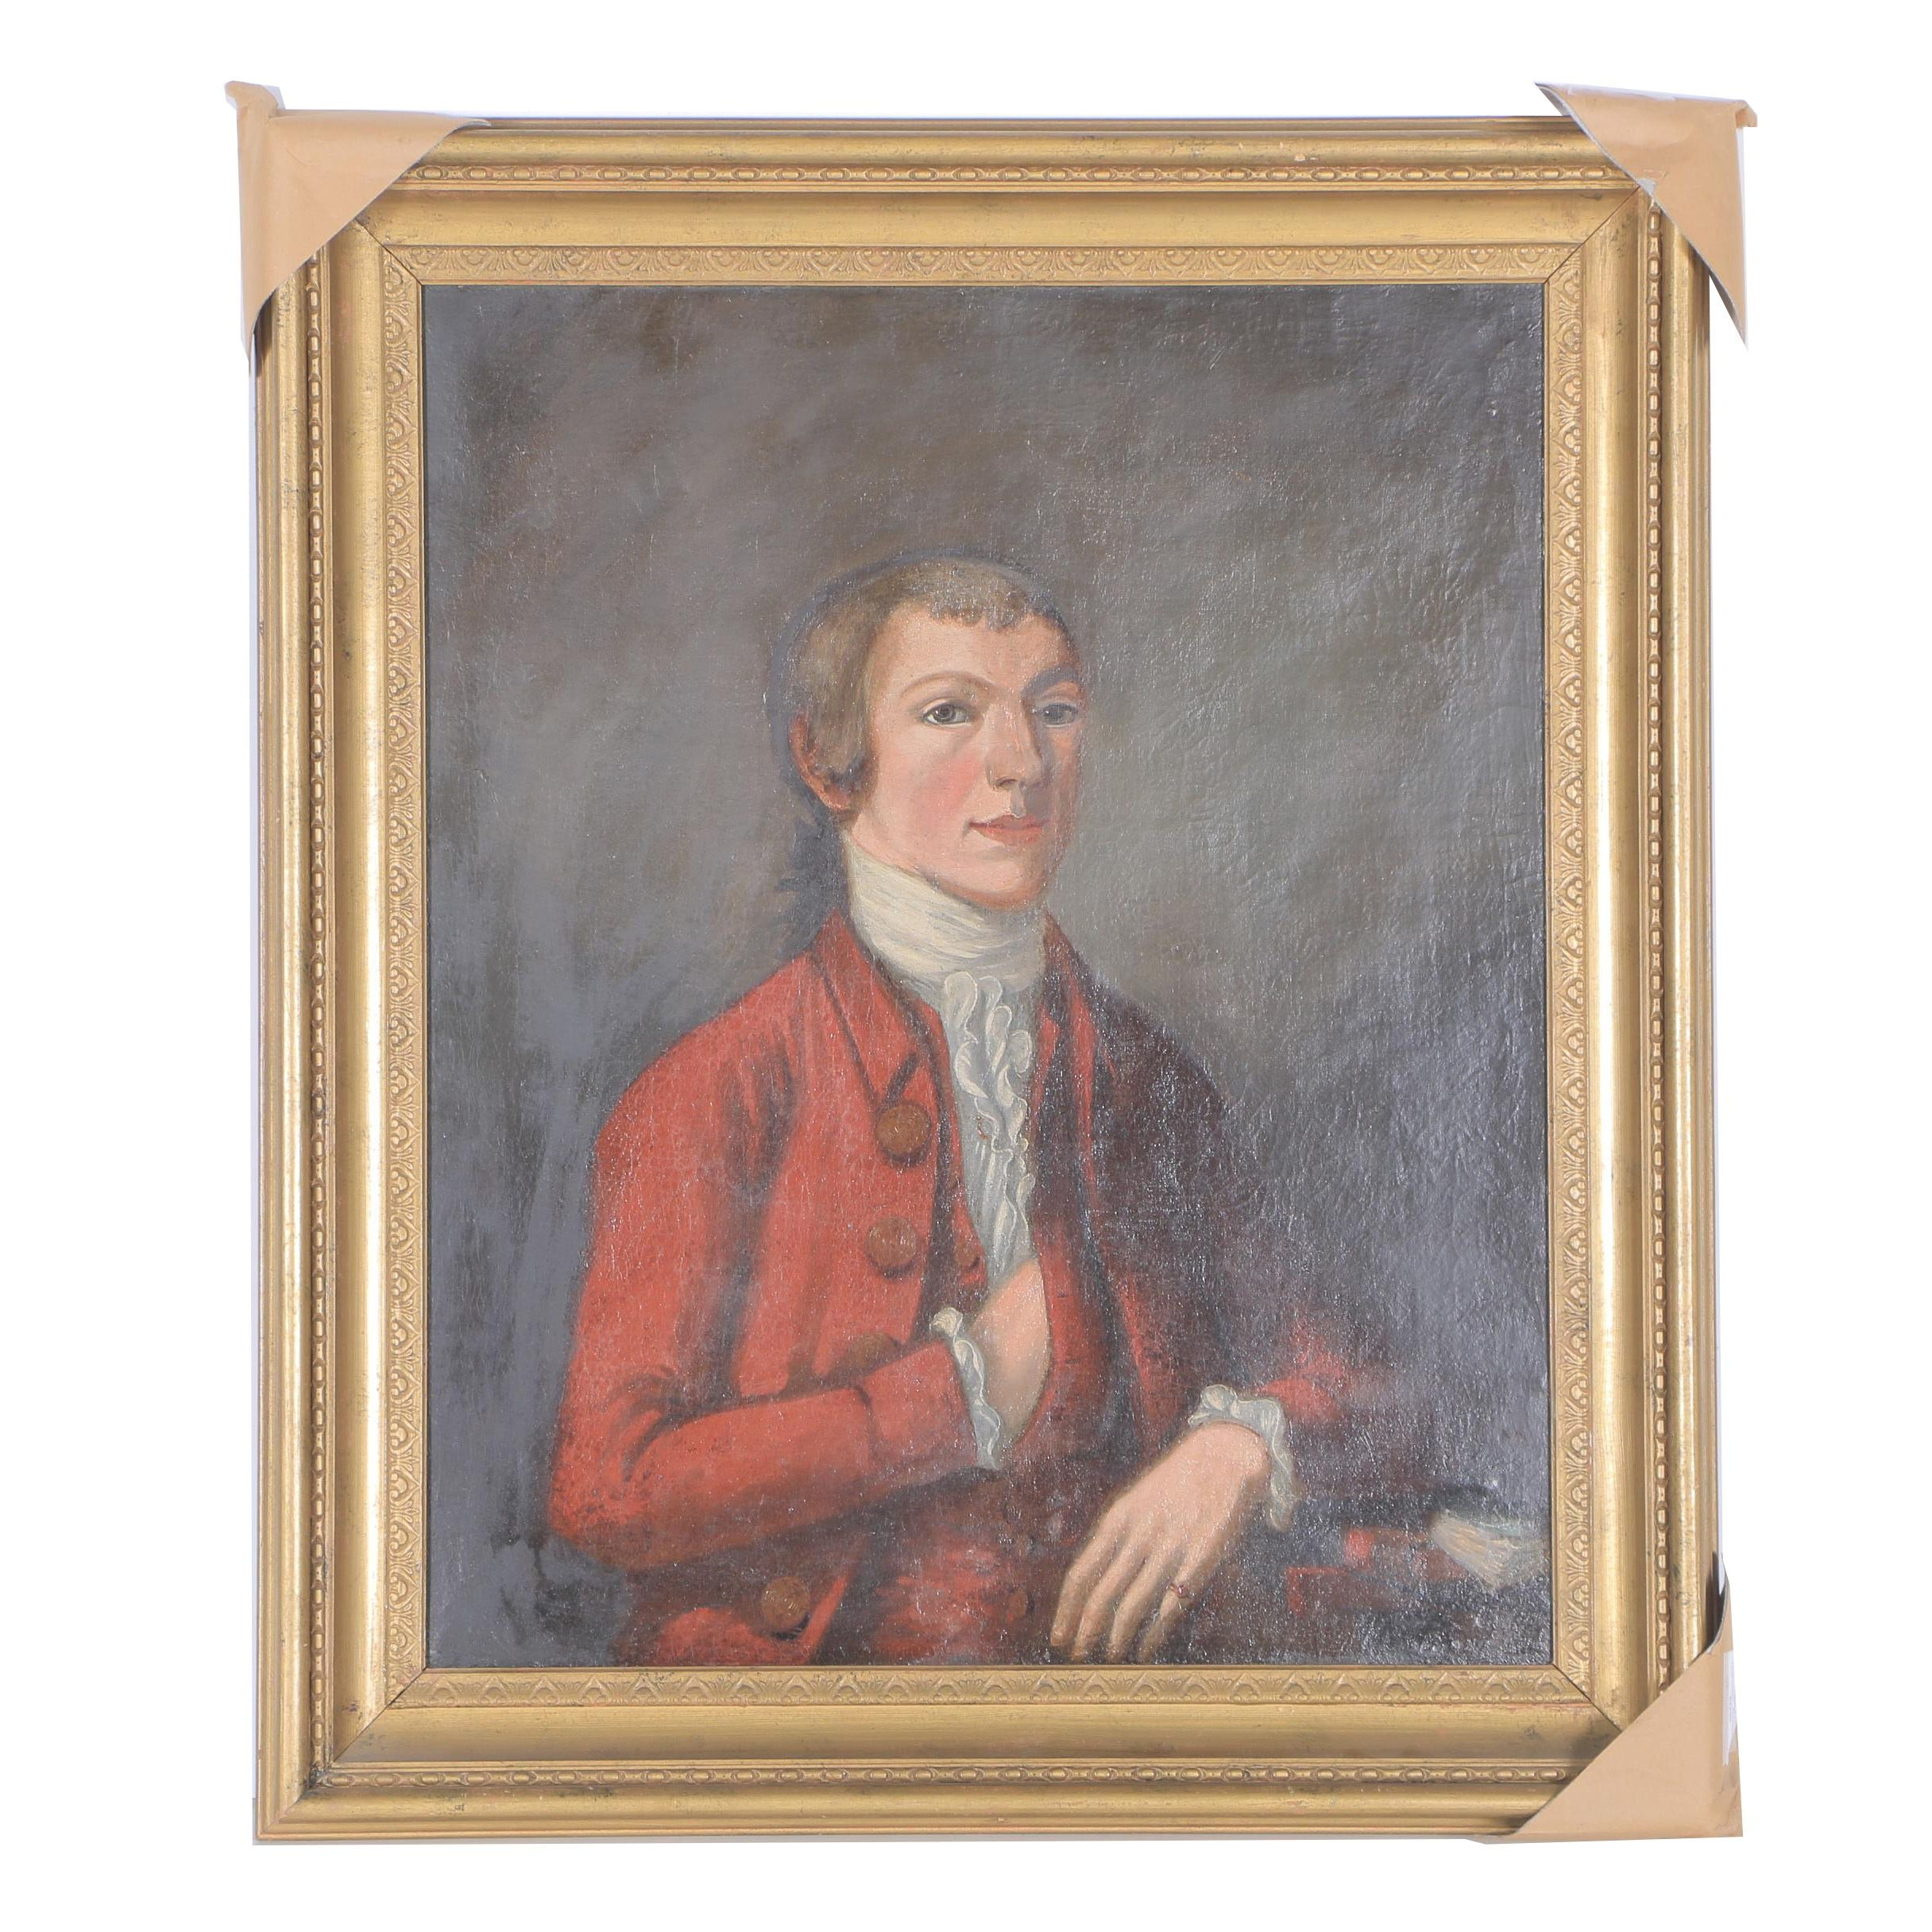 Late 18th Century English Oil on Canvas Portrait of a Young Man